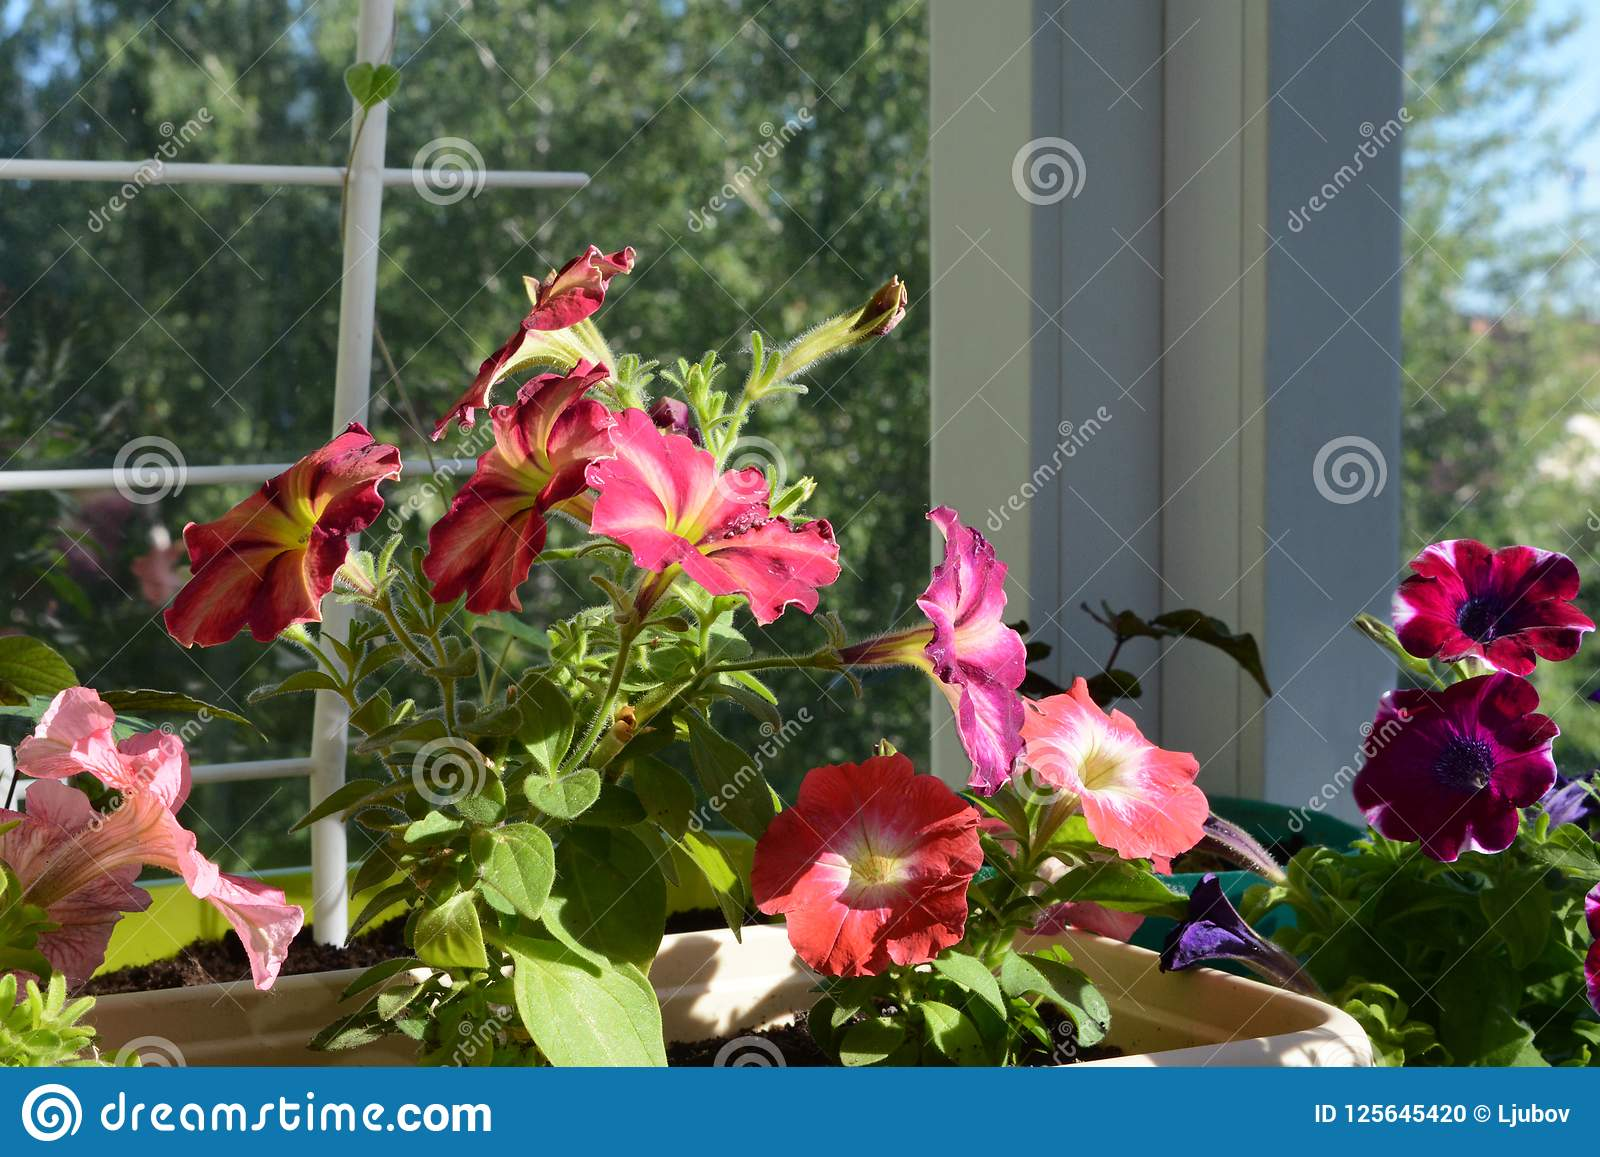 Colorful Petunia Flowers On Sunlight Balcony Gardening With